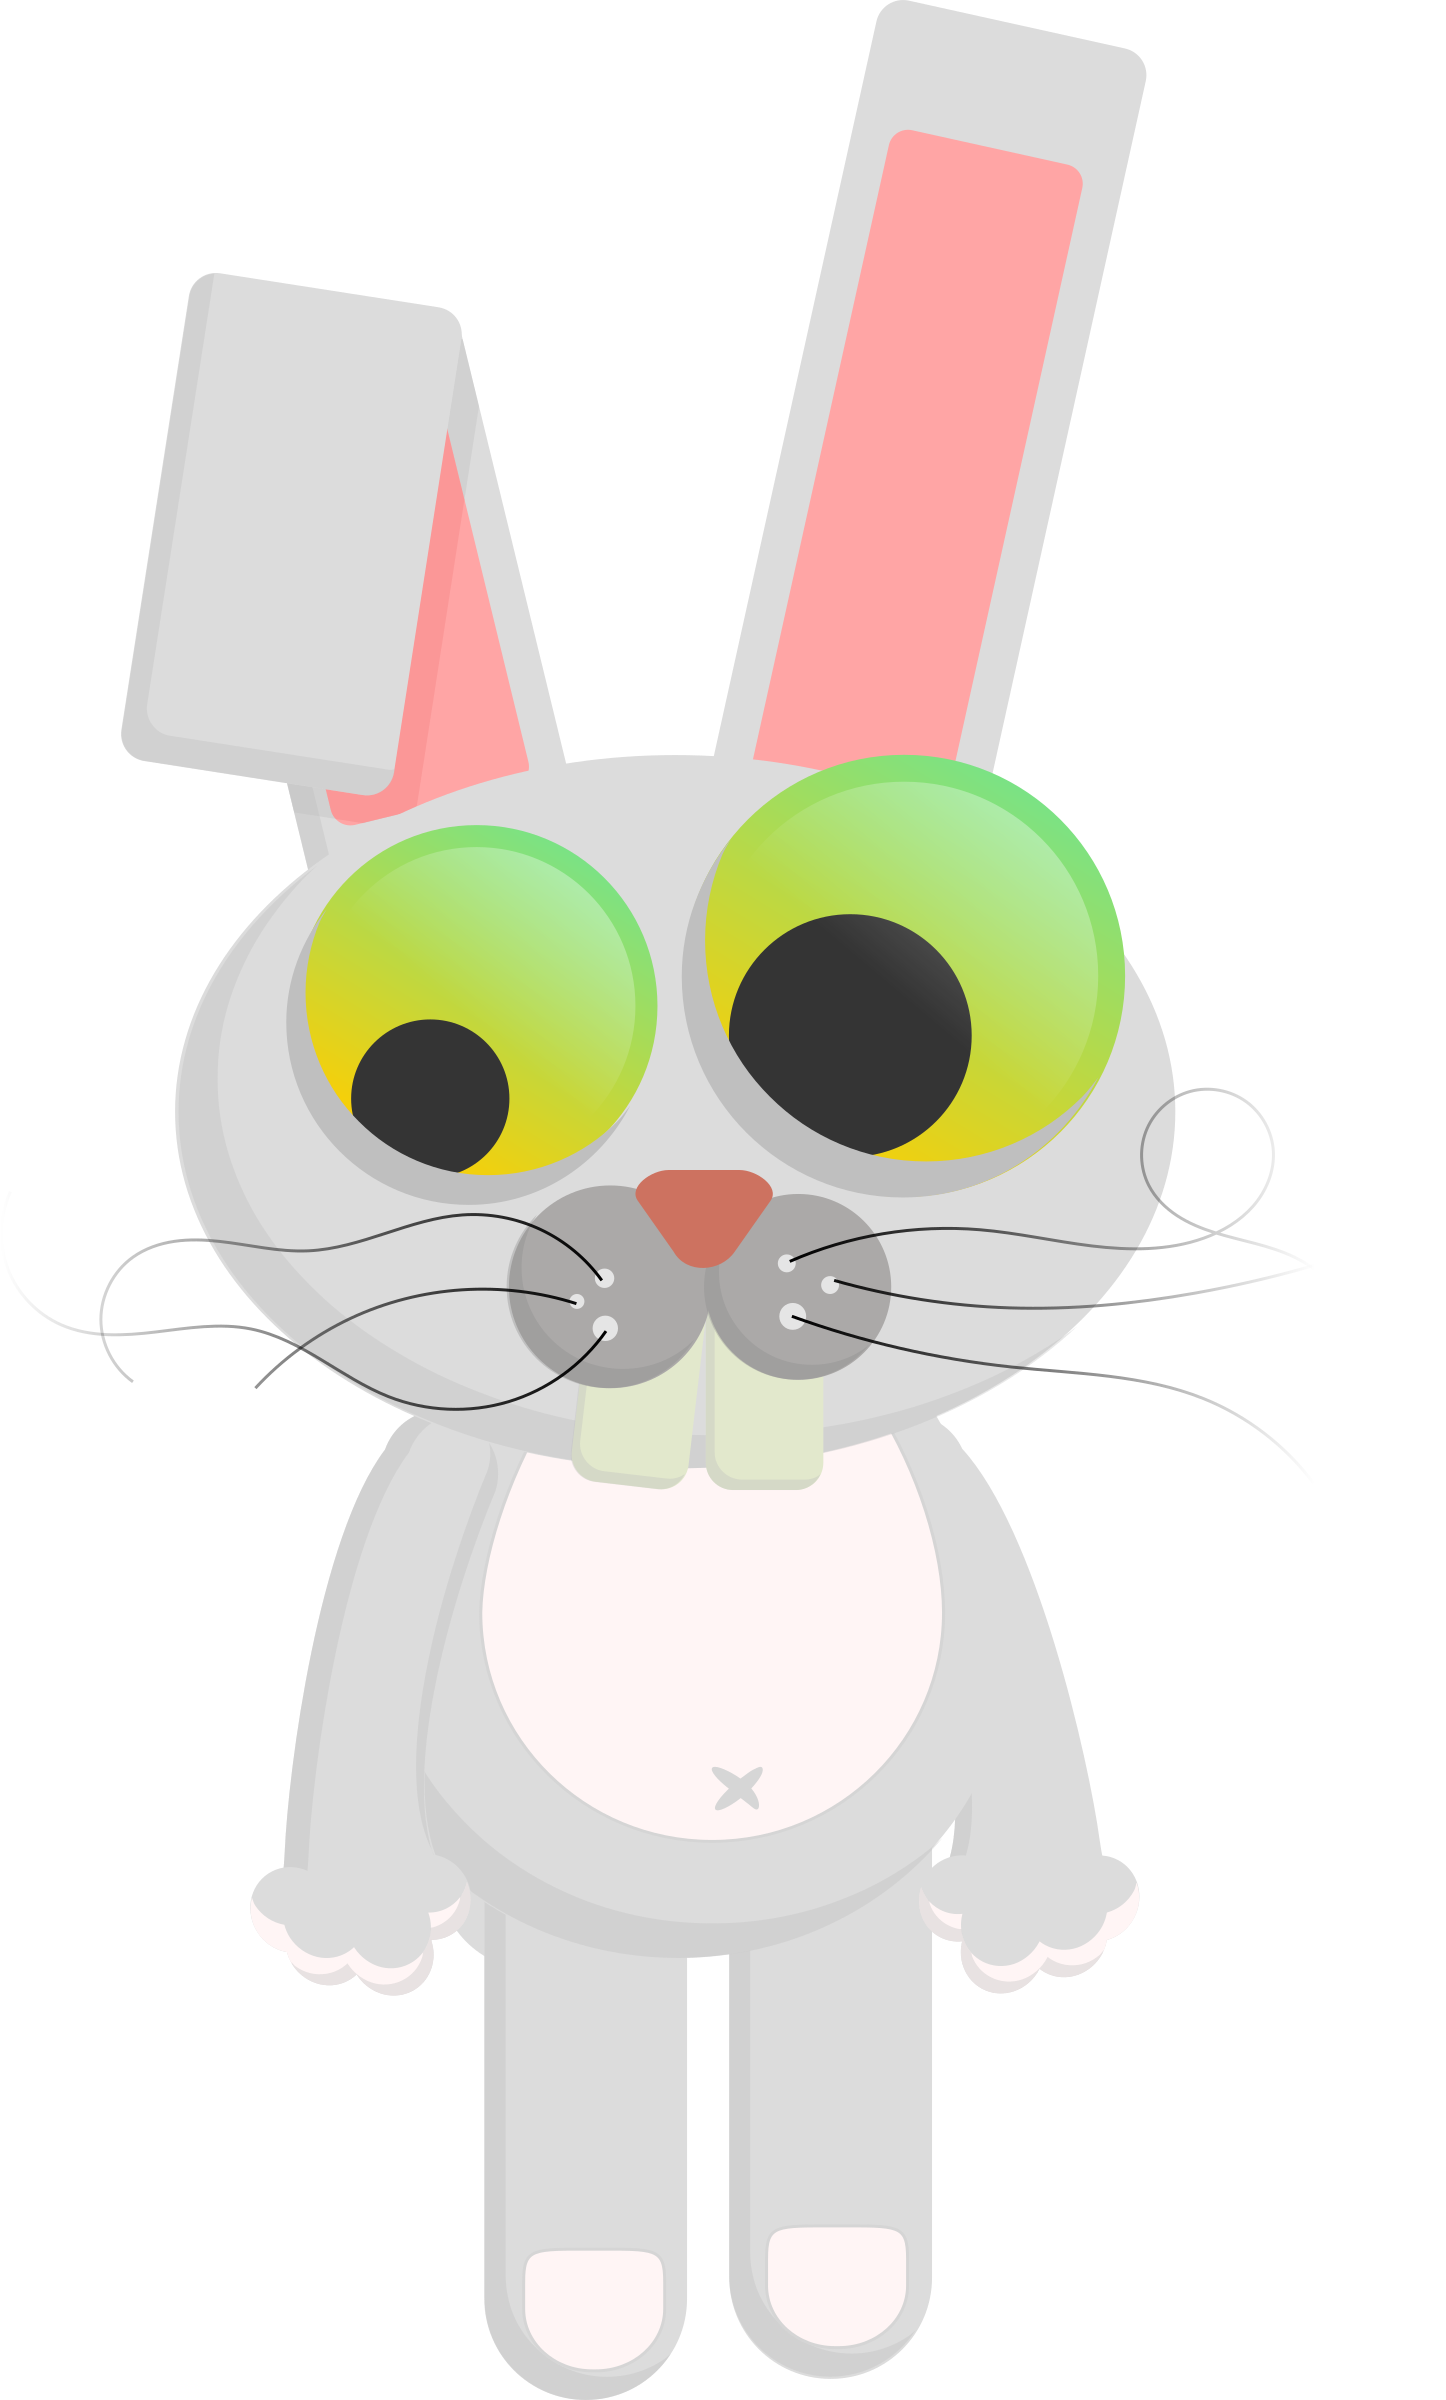 Cartoon Rabbit by PrinterKiller